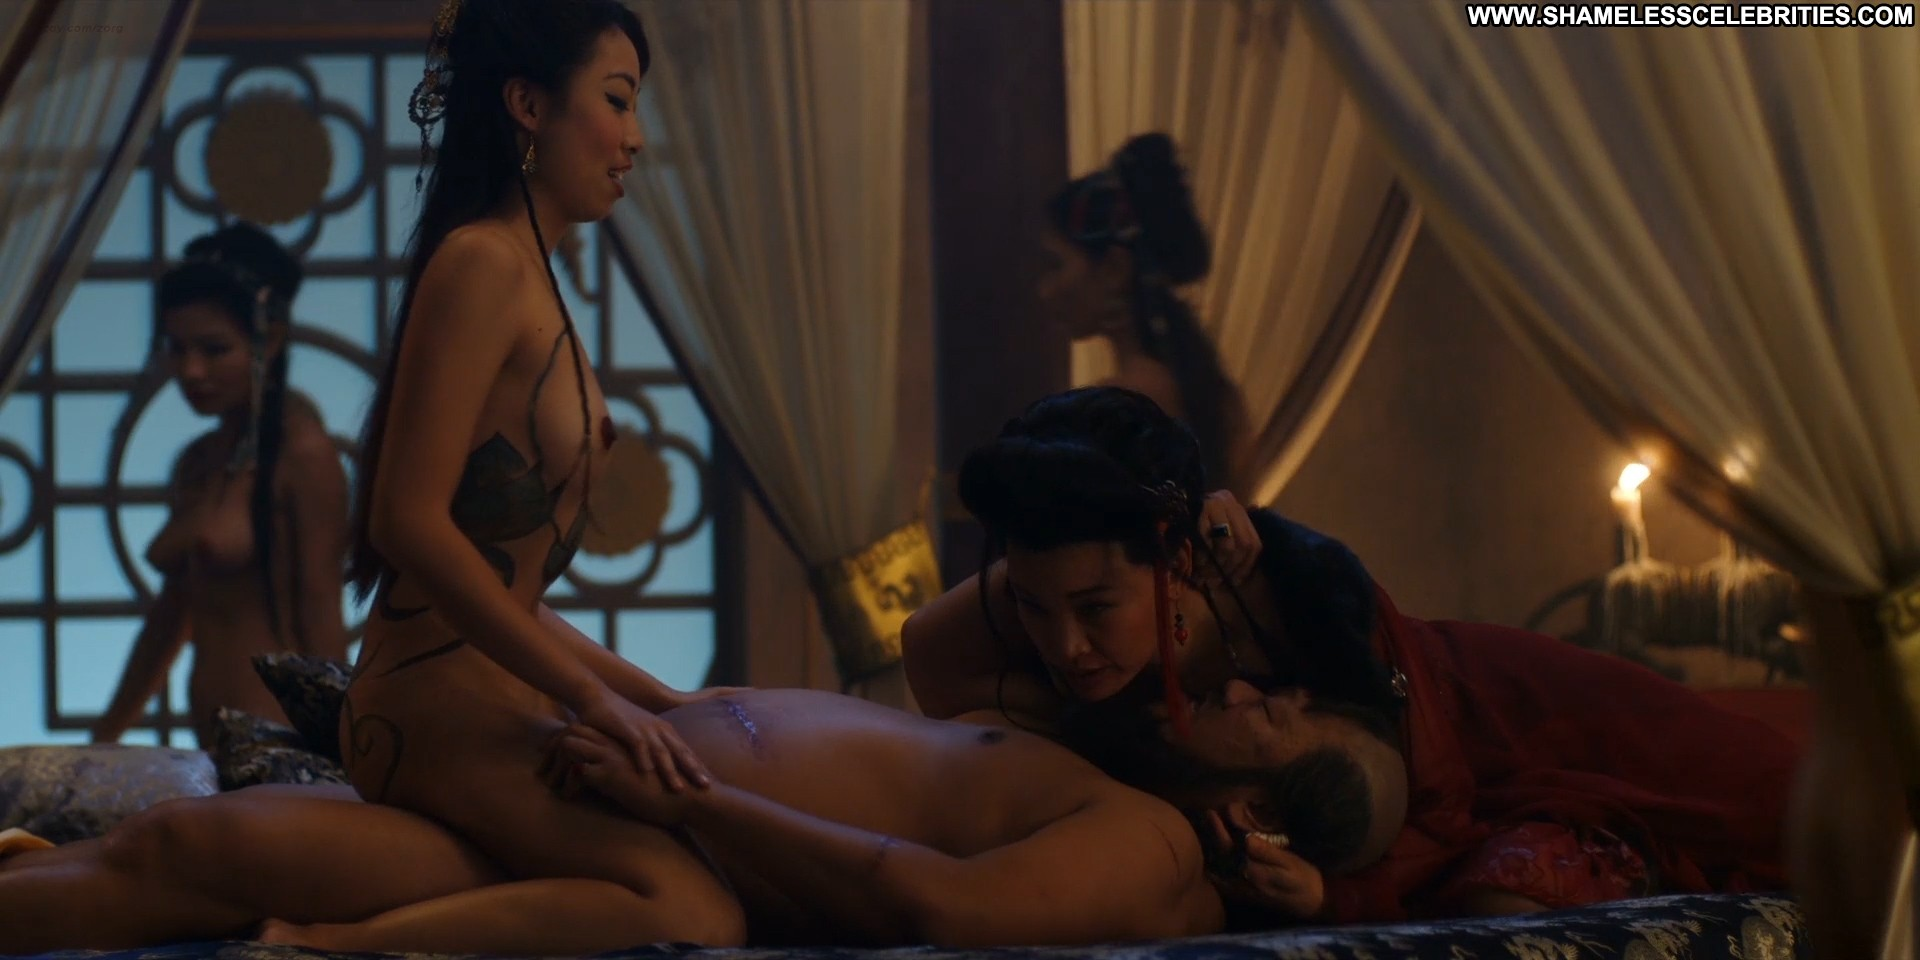 Marco polo sex scenes only 6